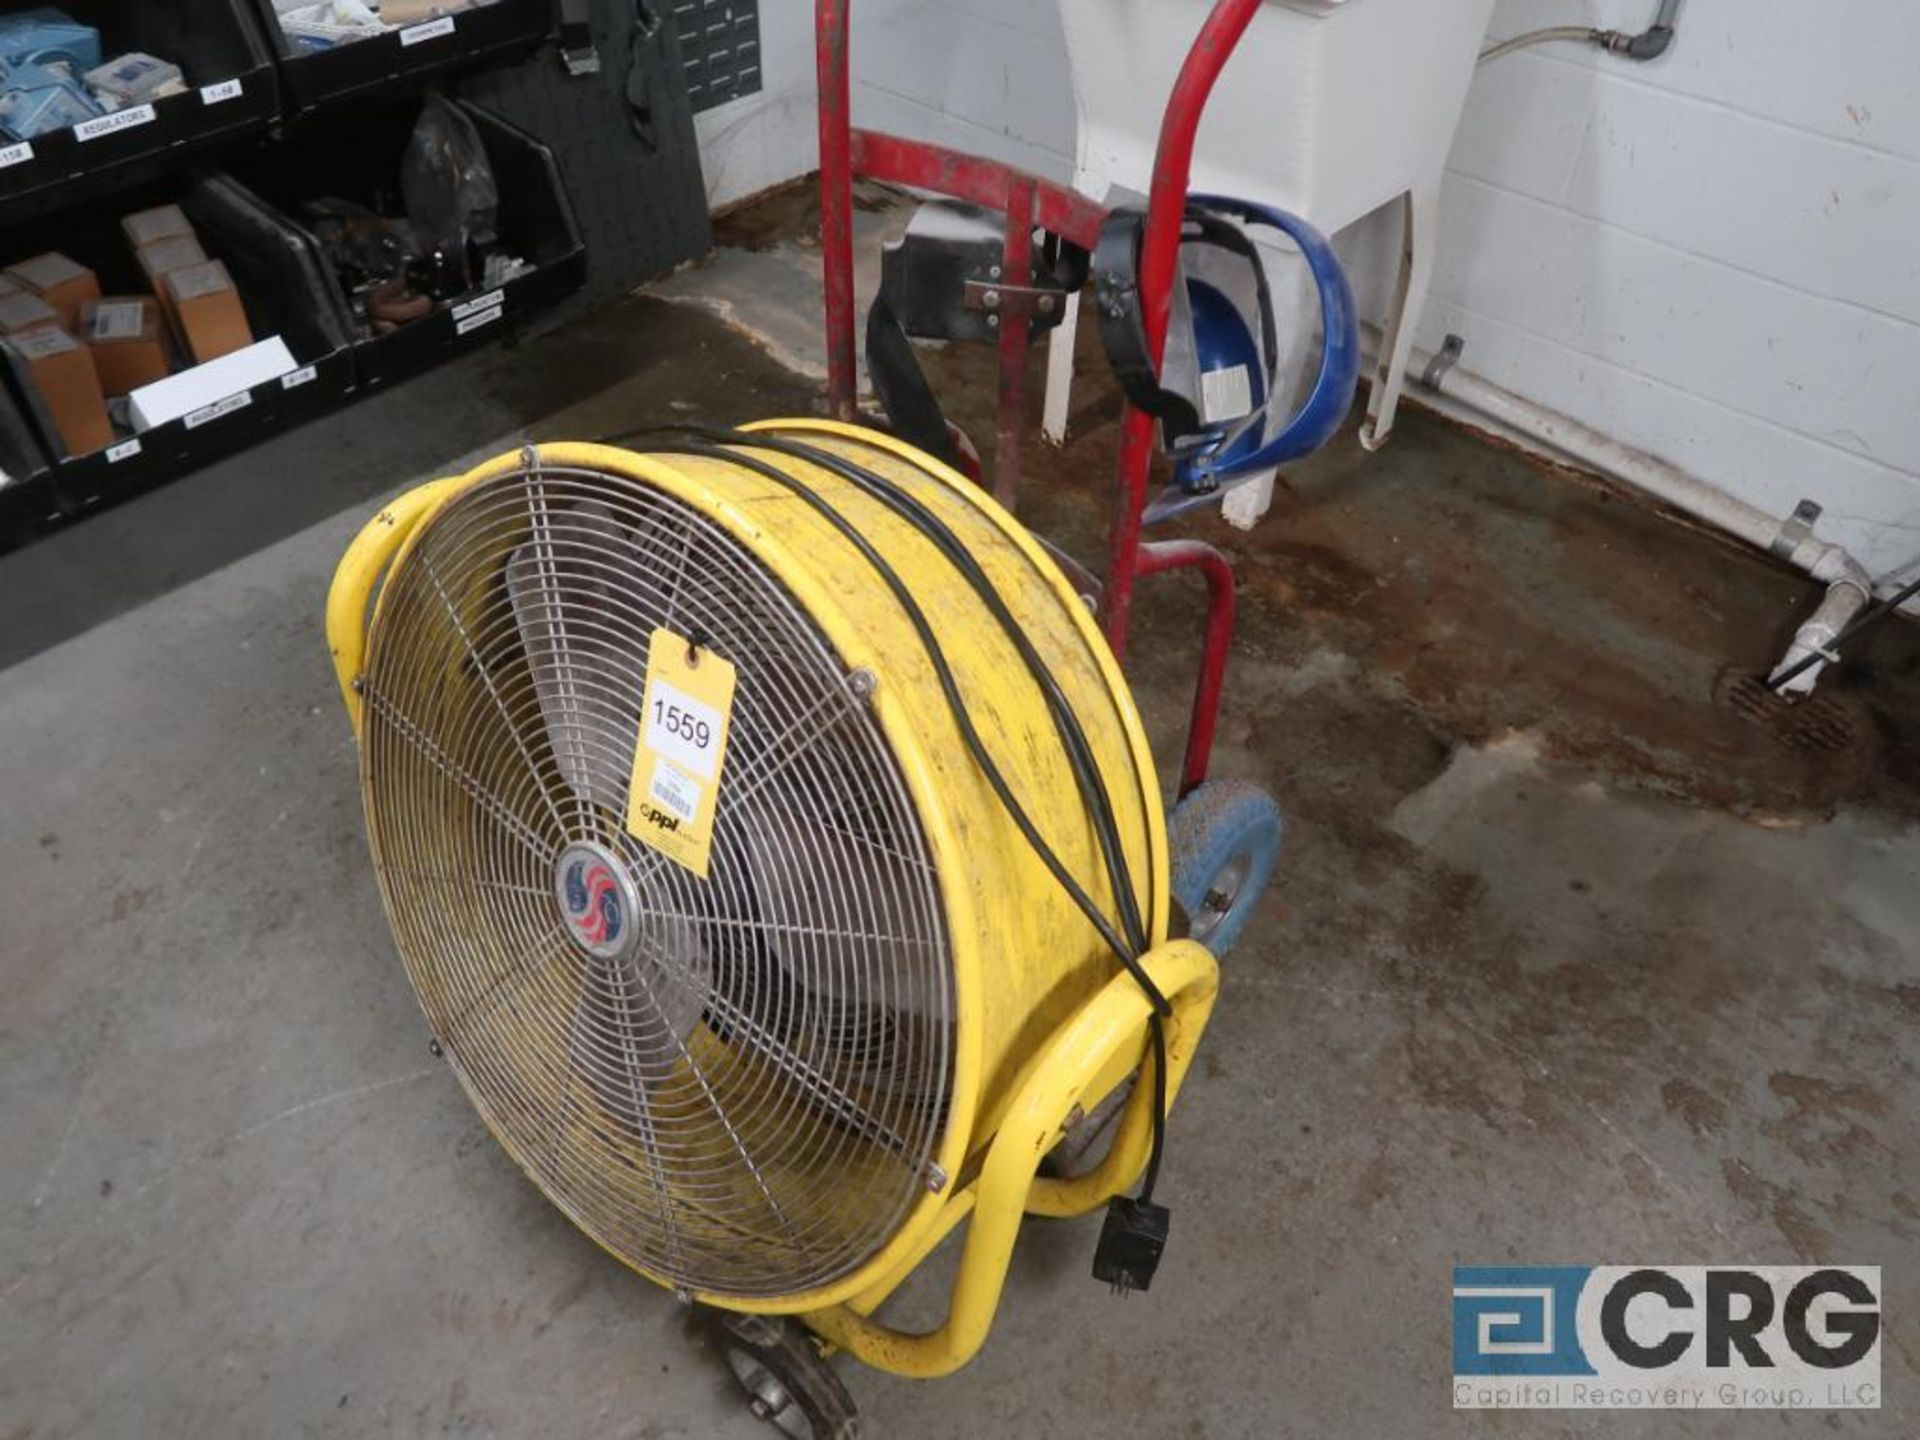 Lot of (2) miscellaneous items including (1) hand truck, and (1) 24 in. fan (Inside Shop-496 Dock